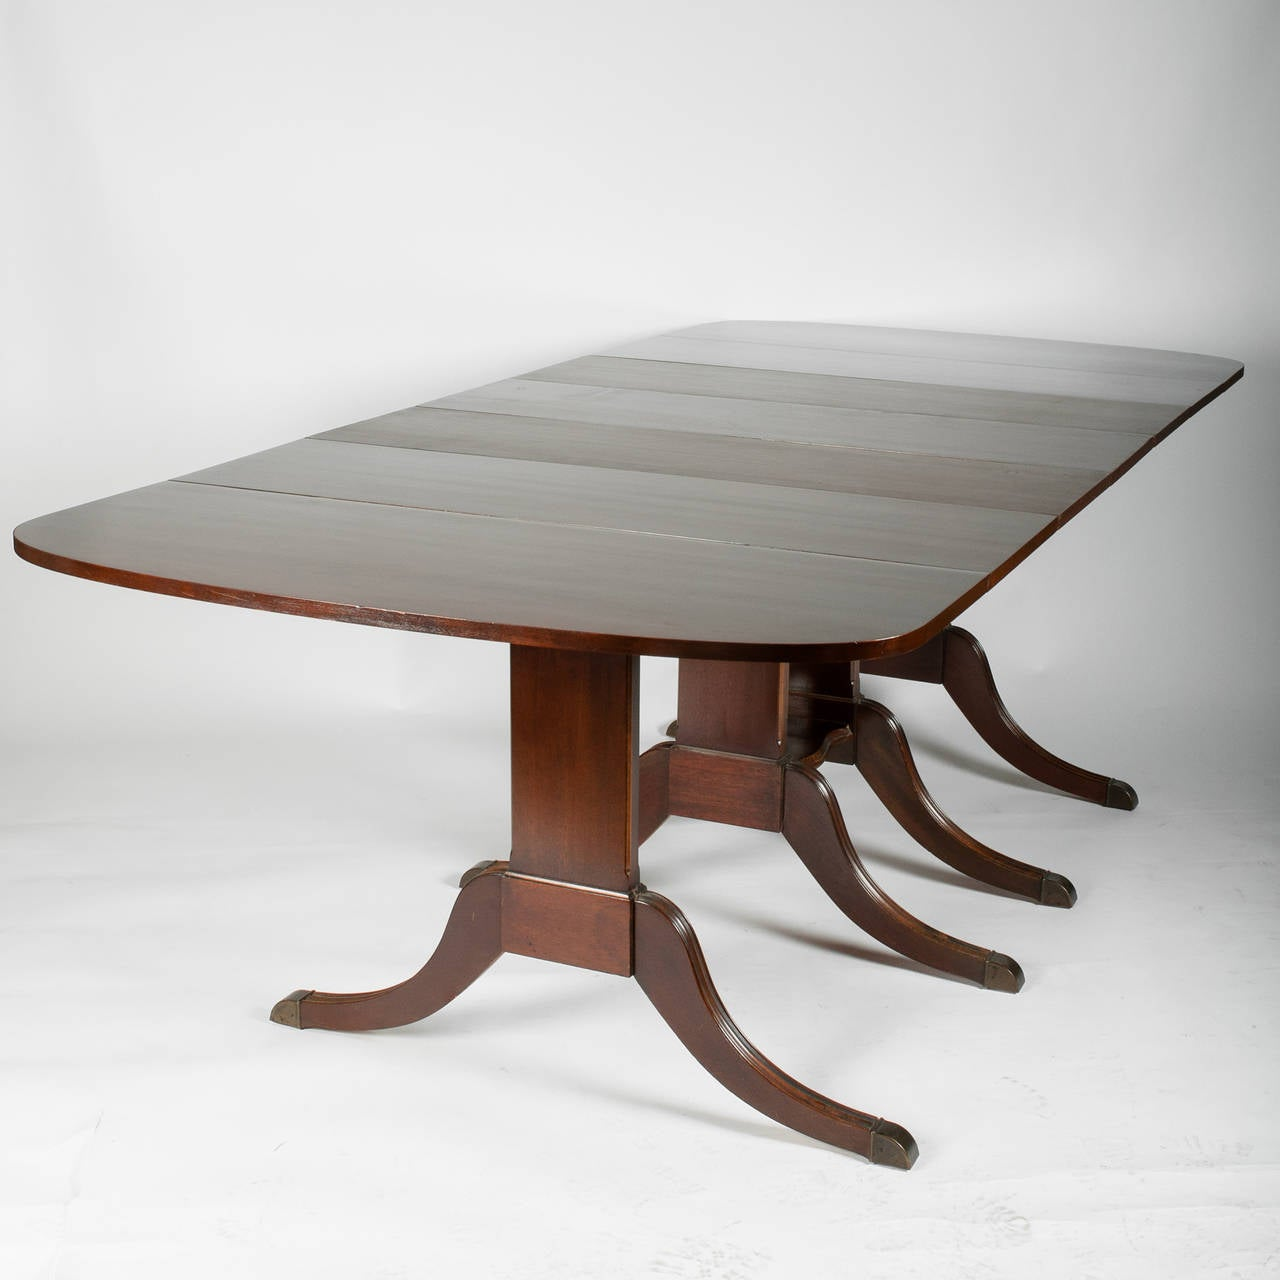 Duncan phyfe style drop leaf extension table for sale at for Drop leaf dining table